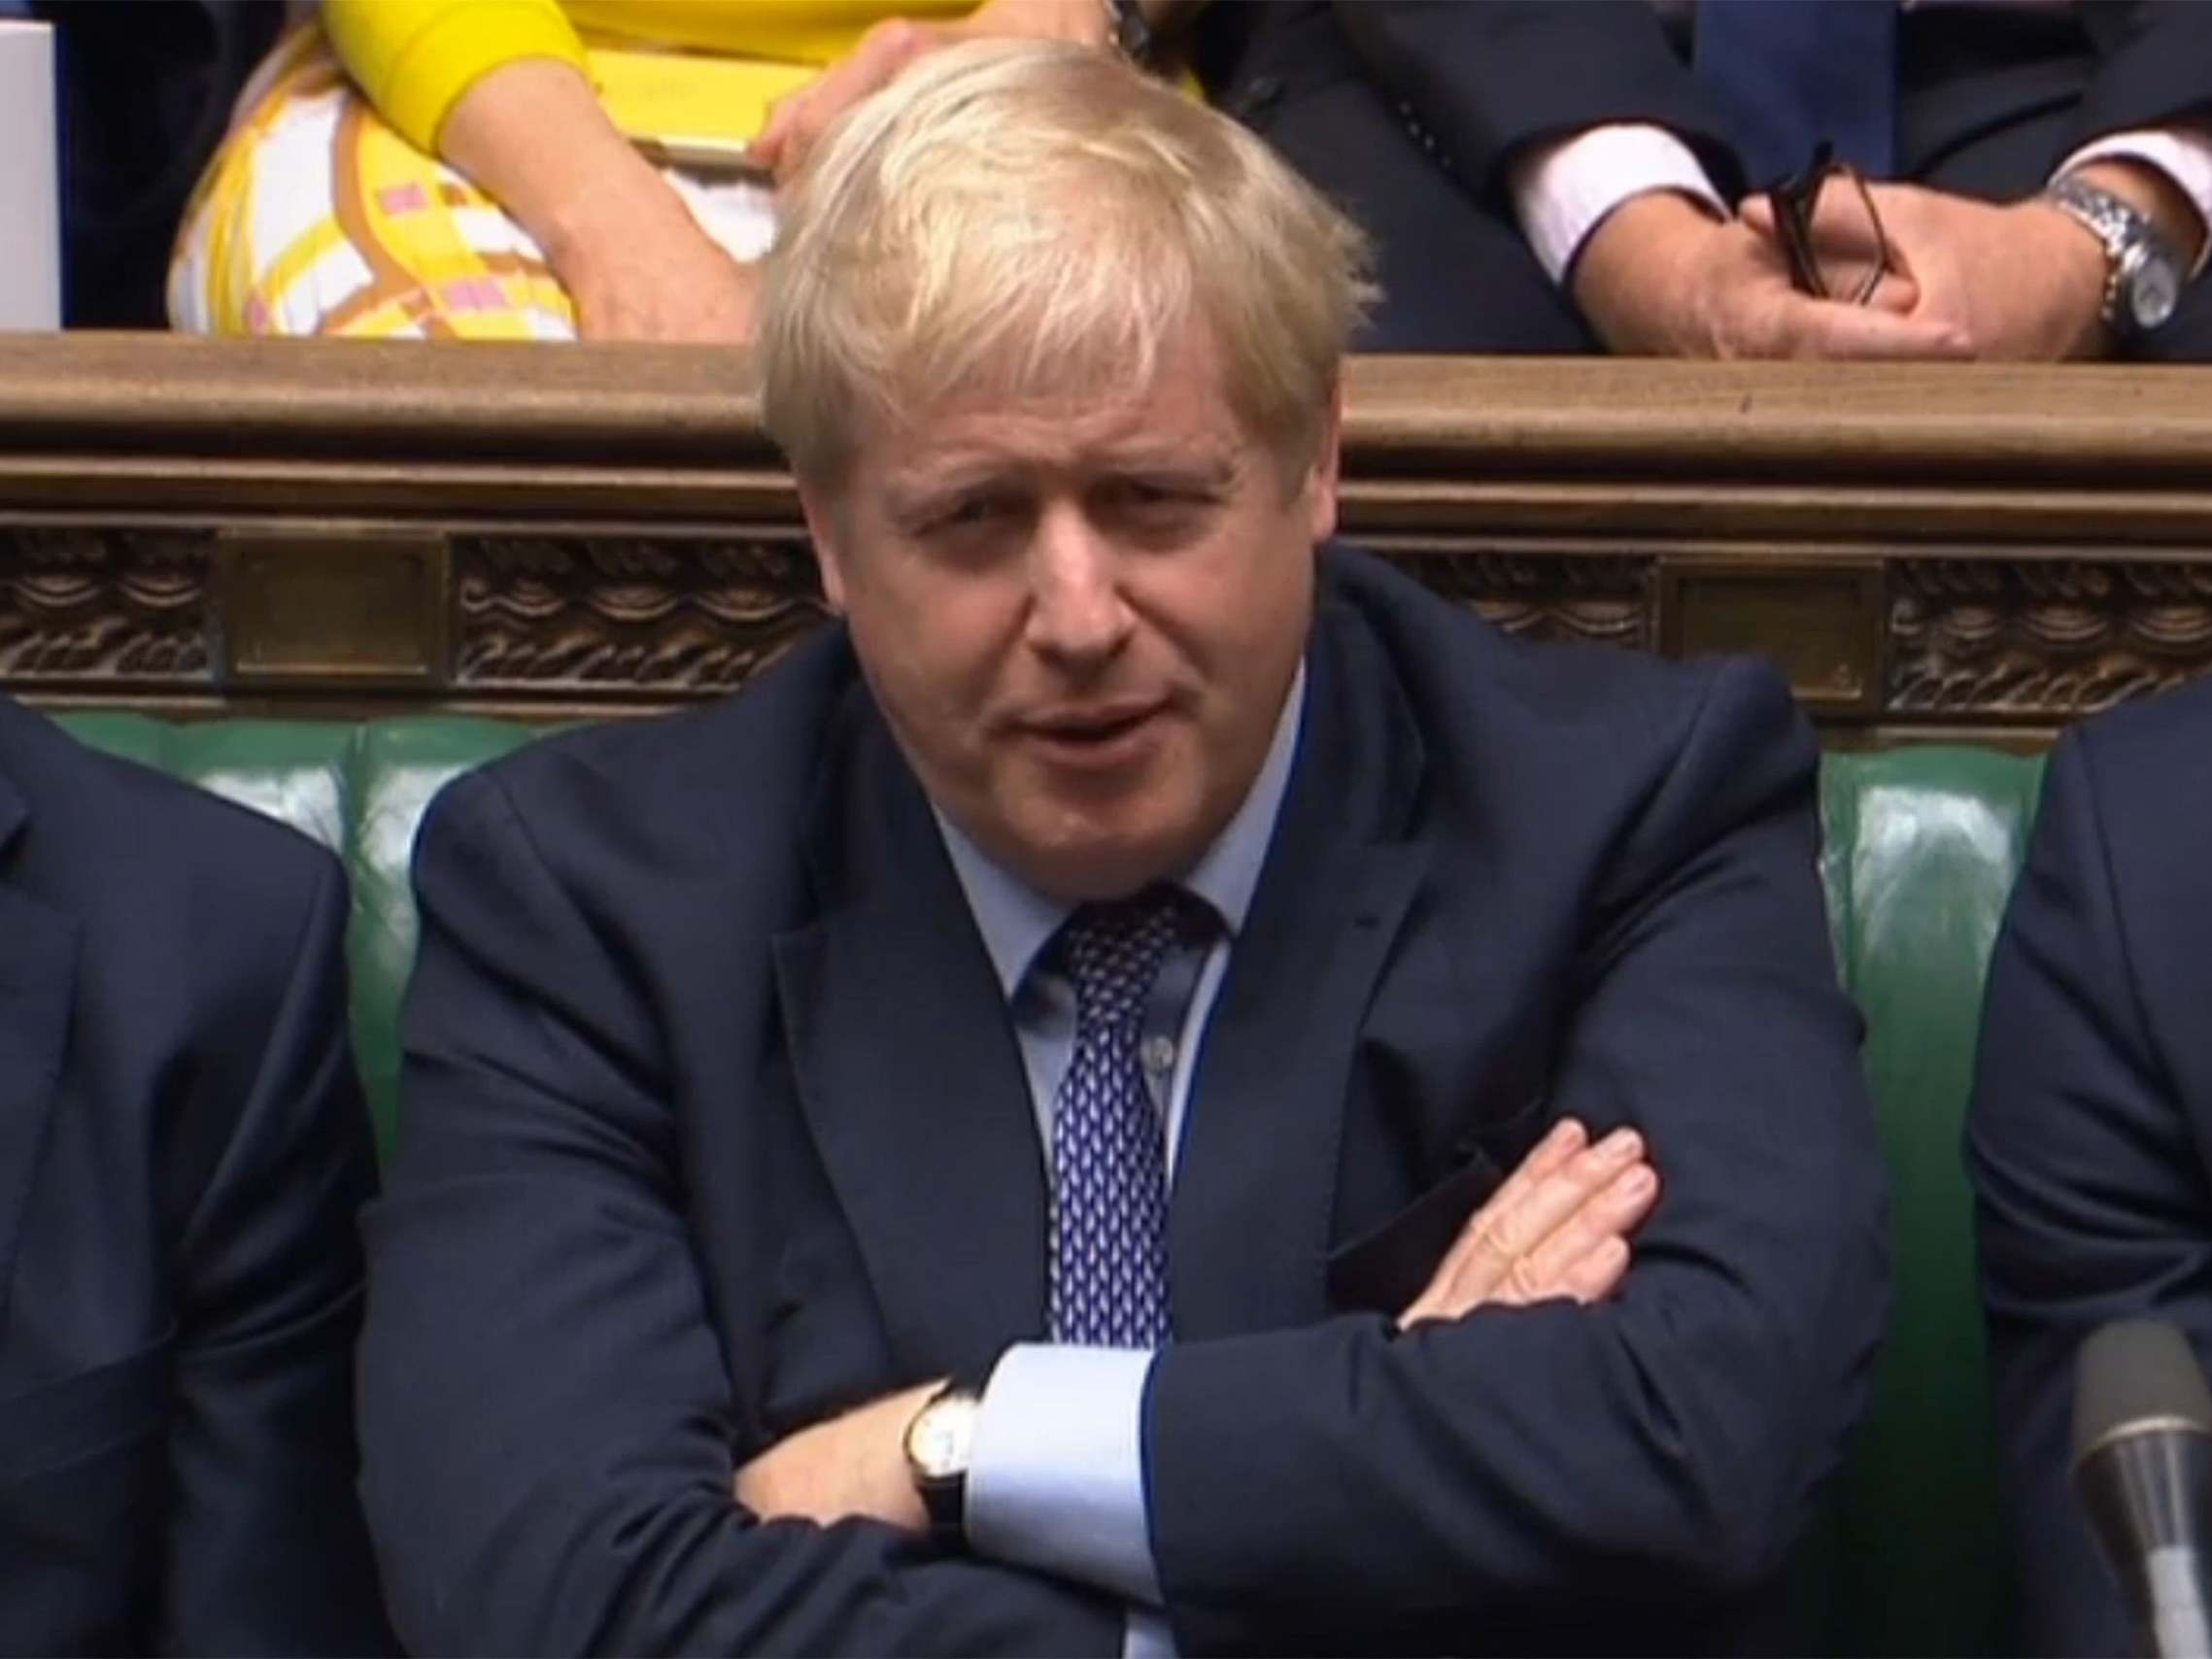 Brexit vote: Boris Johnson's plan in chaos as customs union amendment has 'good chance' of passing